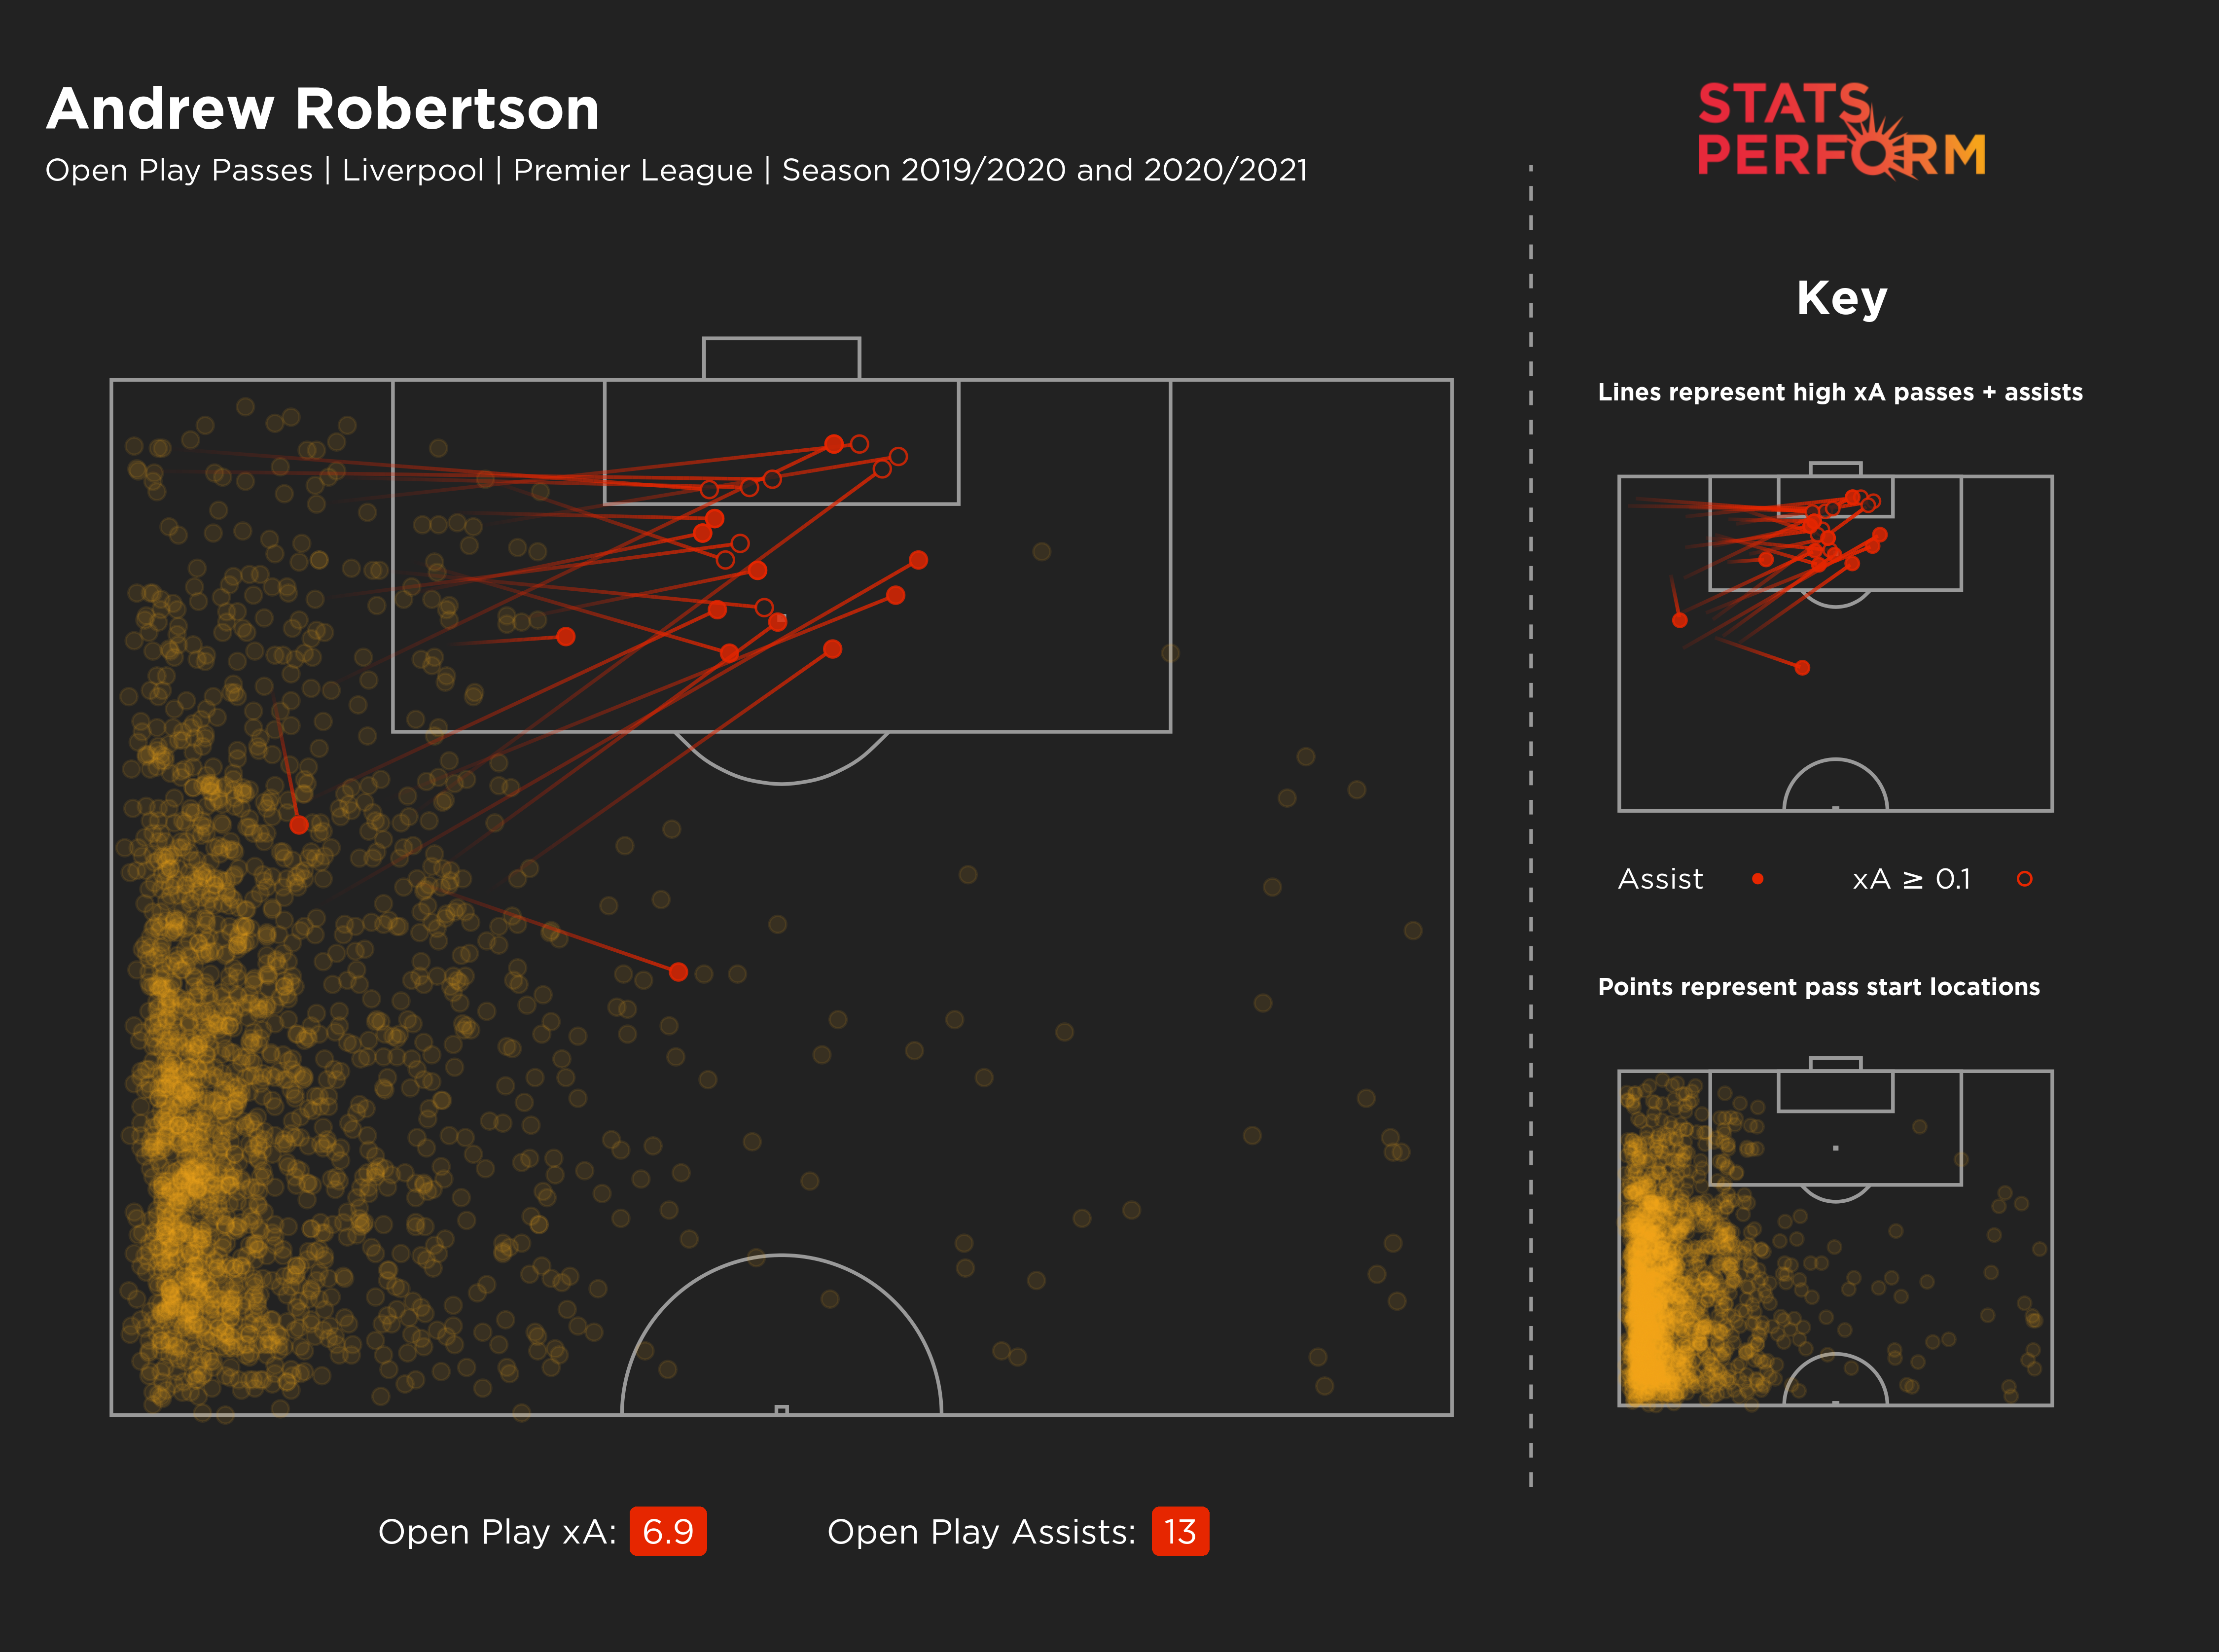 Andy Robertson's expected assists map since the start of 2019-20